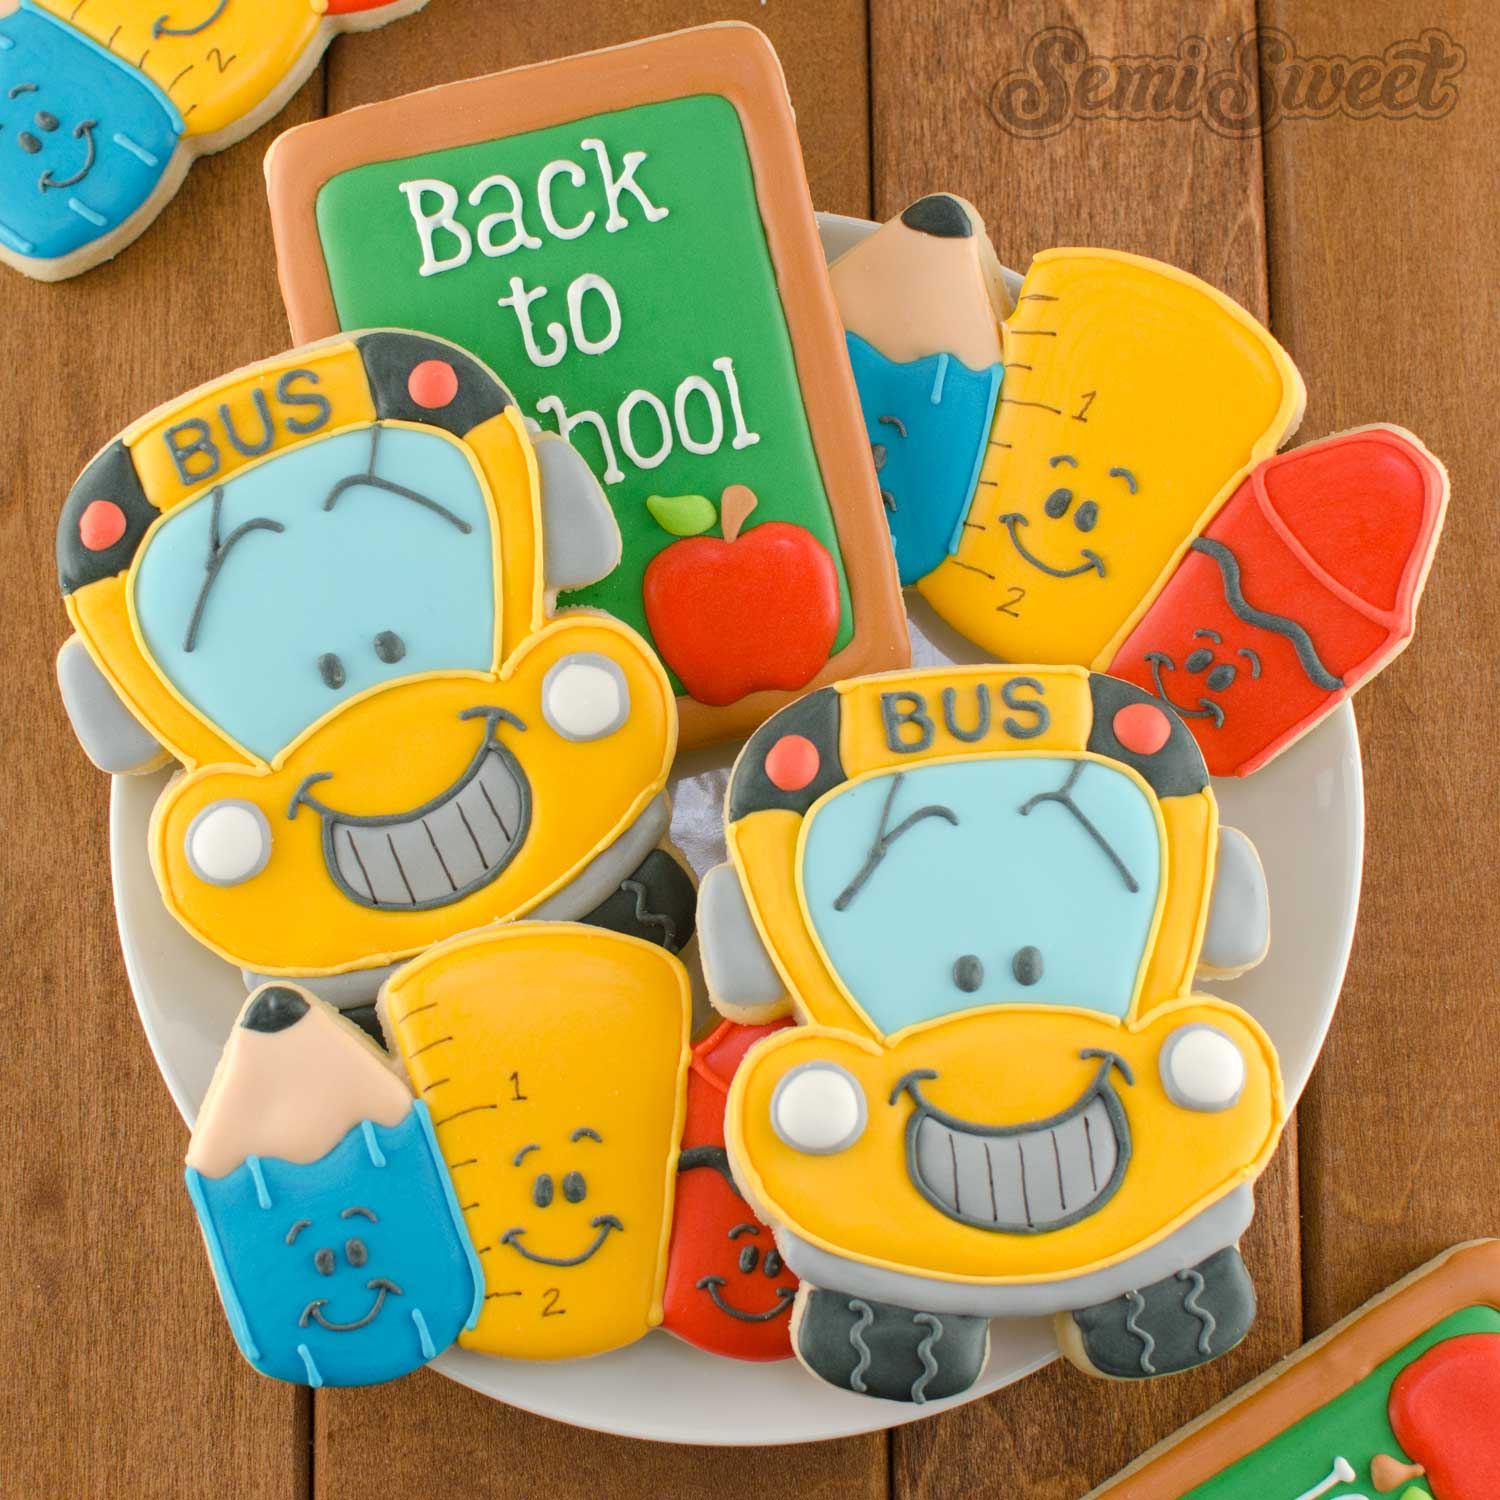 How to Make School Bus Cookies